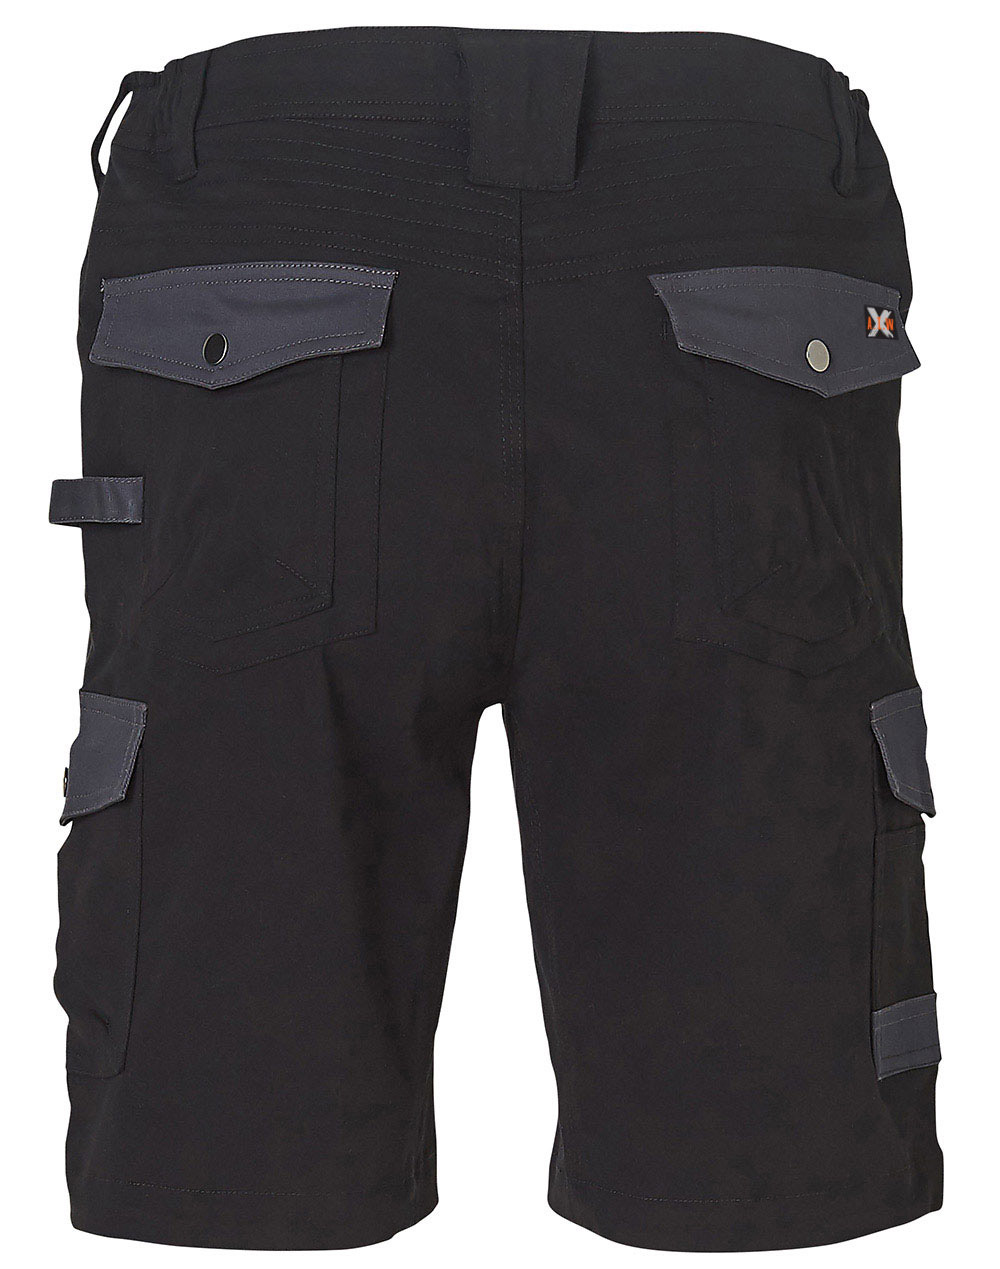 https://s3-ap-southeast-1.amazonaws.com/ws-imgs/WORKWEAR/WP23_Black_Back.jpg